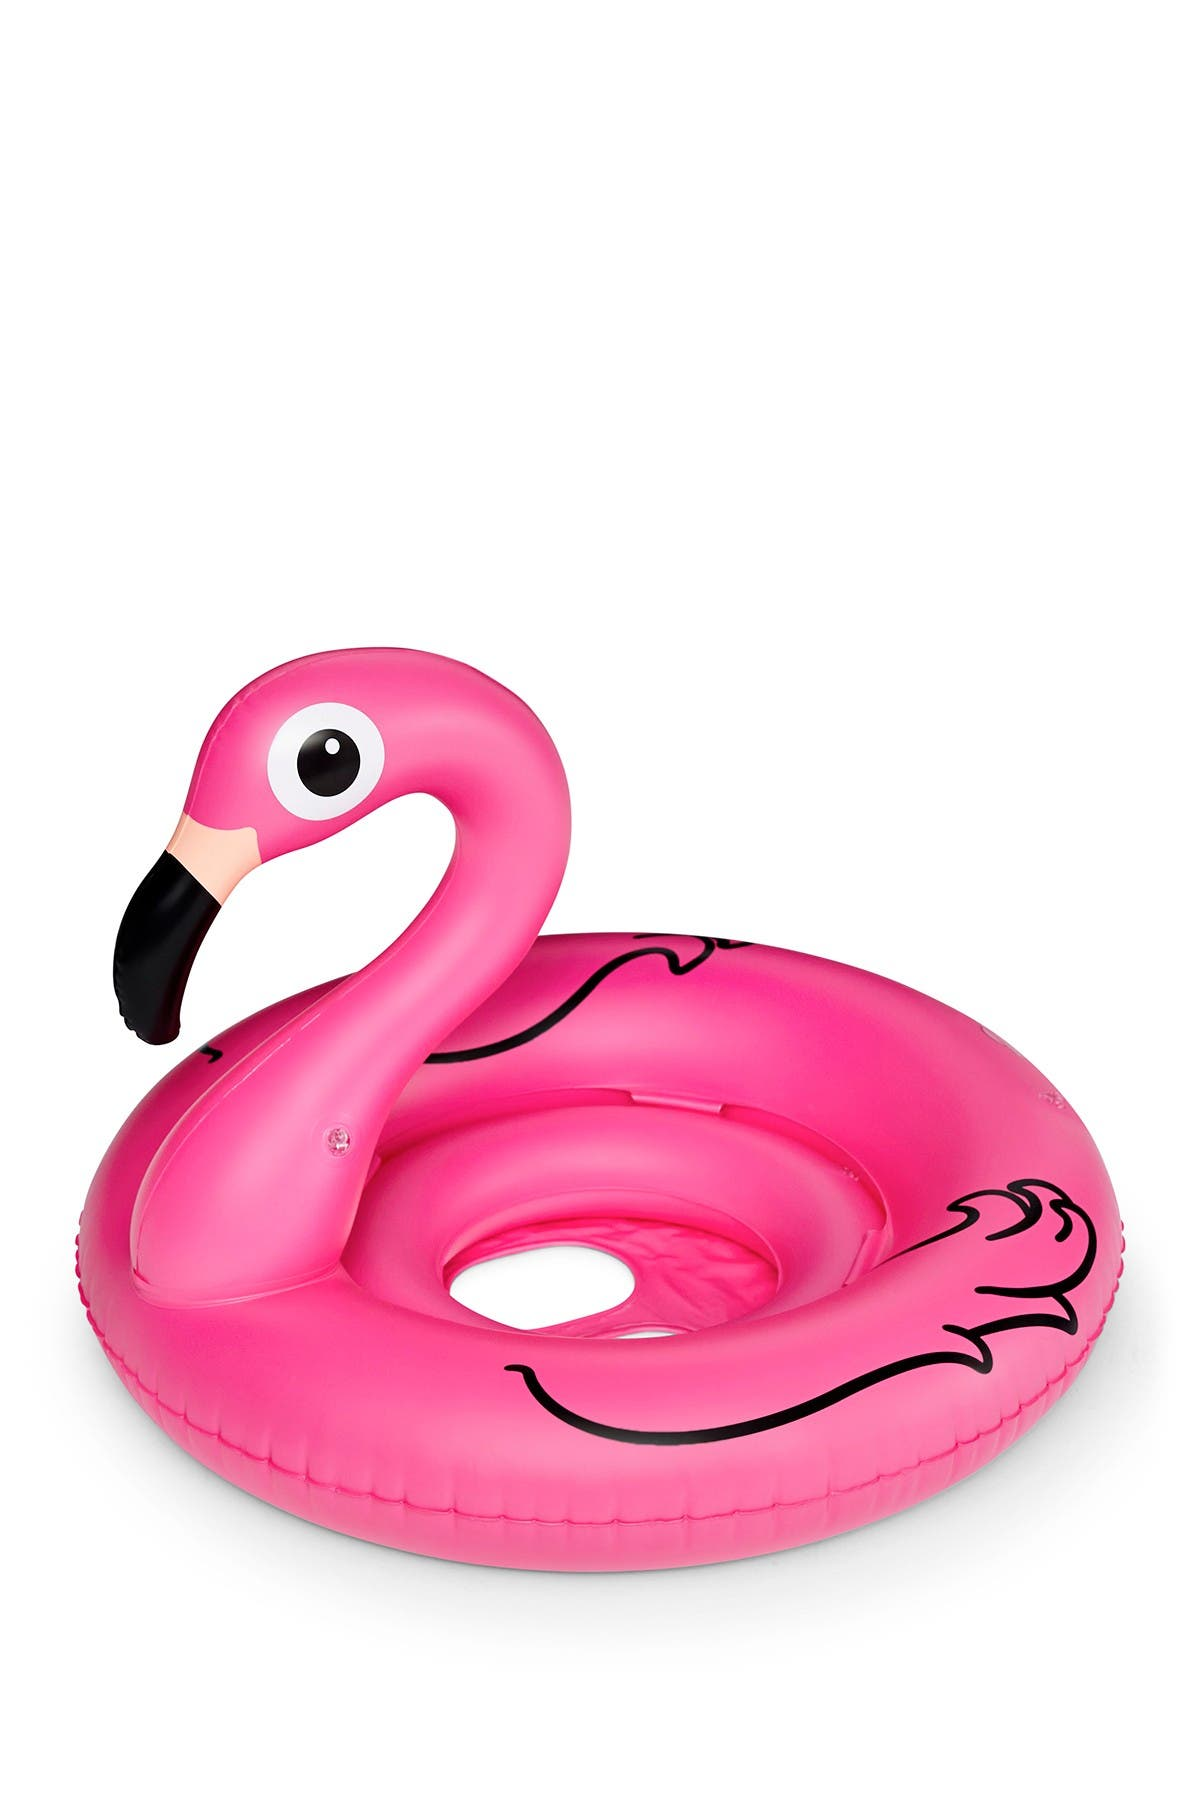 Image of BIG MOUTH TOYS Lil' Floats Pink Flamingo